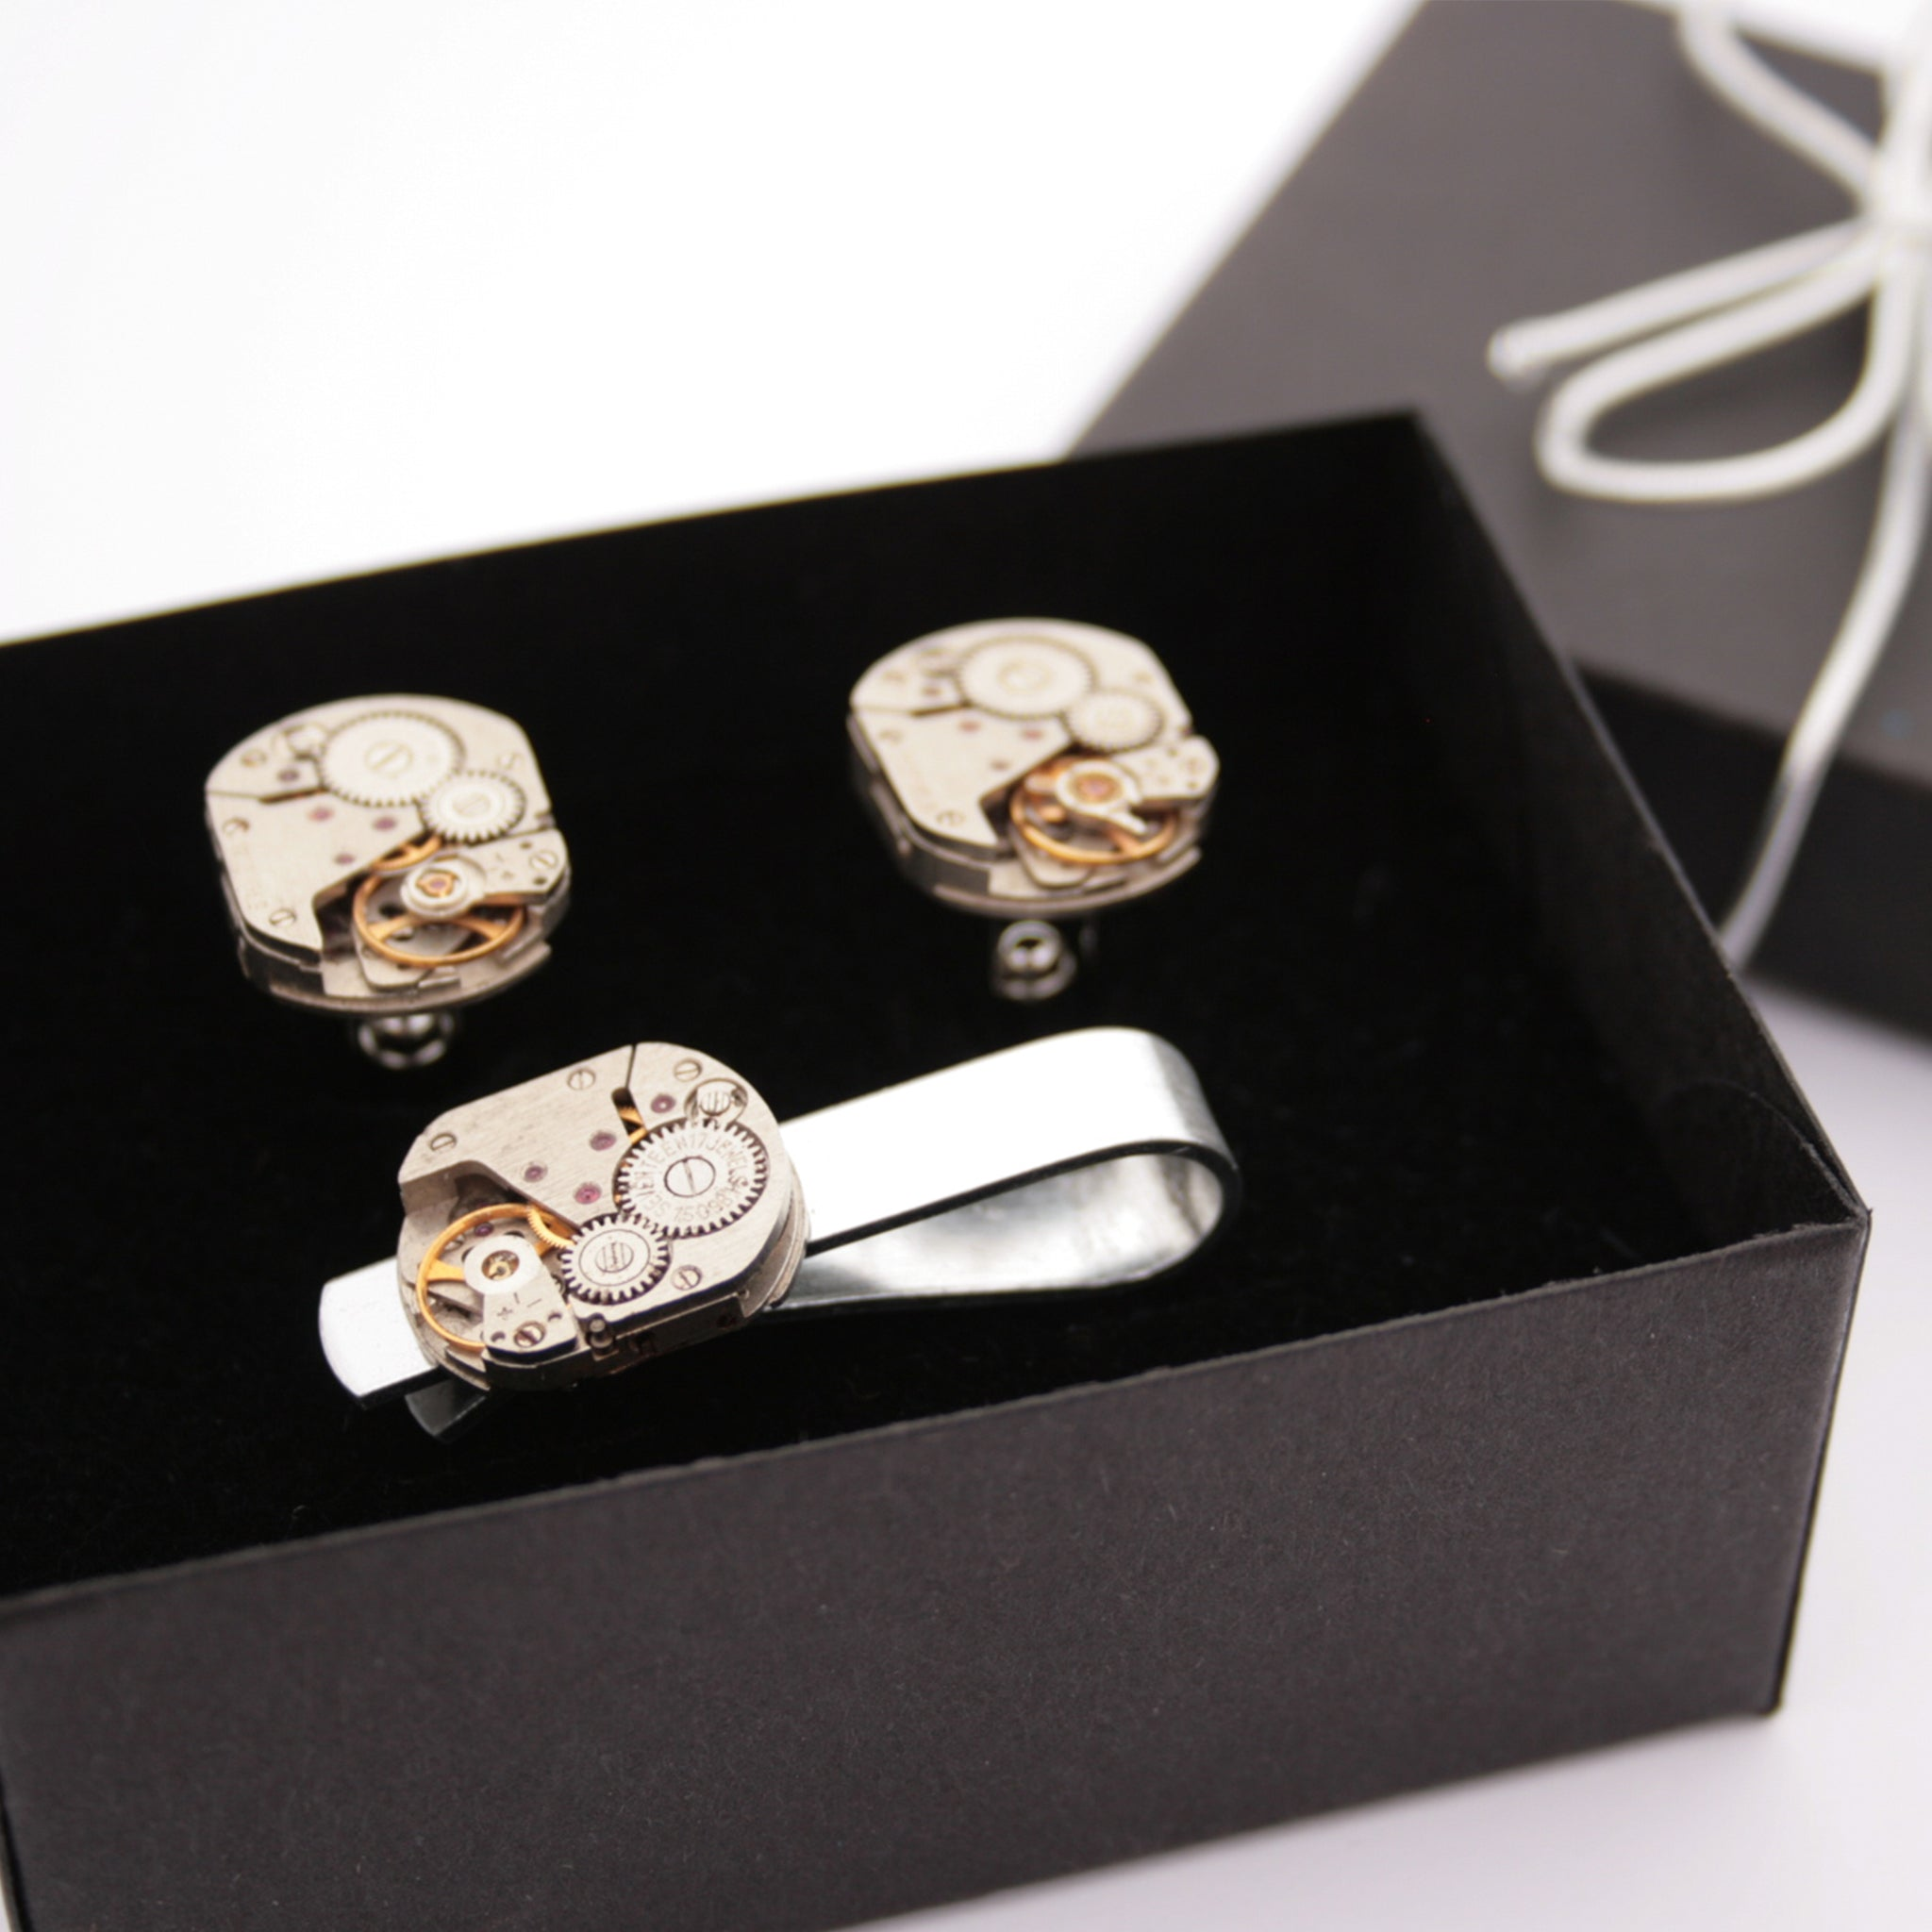 Steampunk Tie Clip and Cufflinks Set in a box